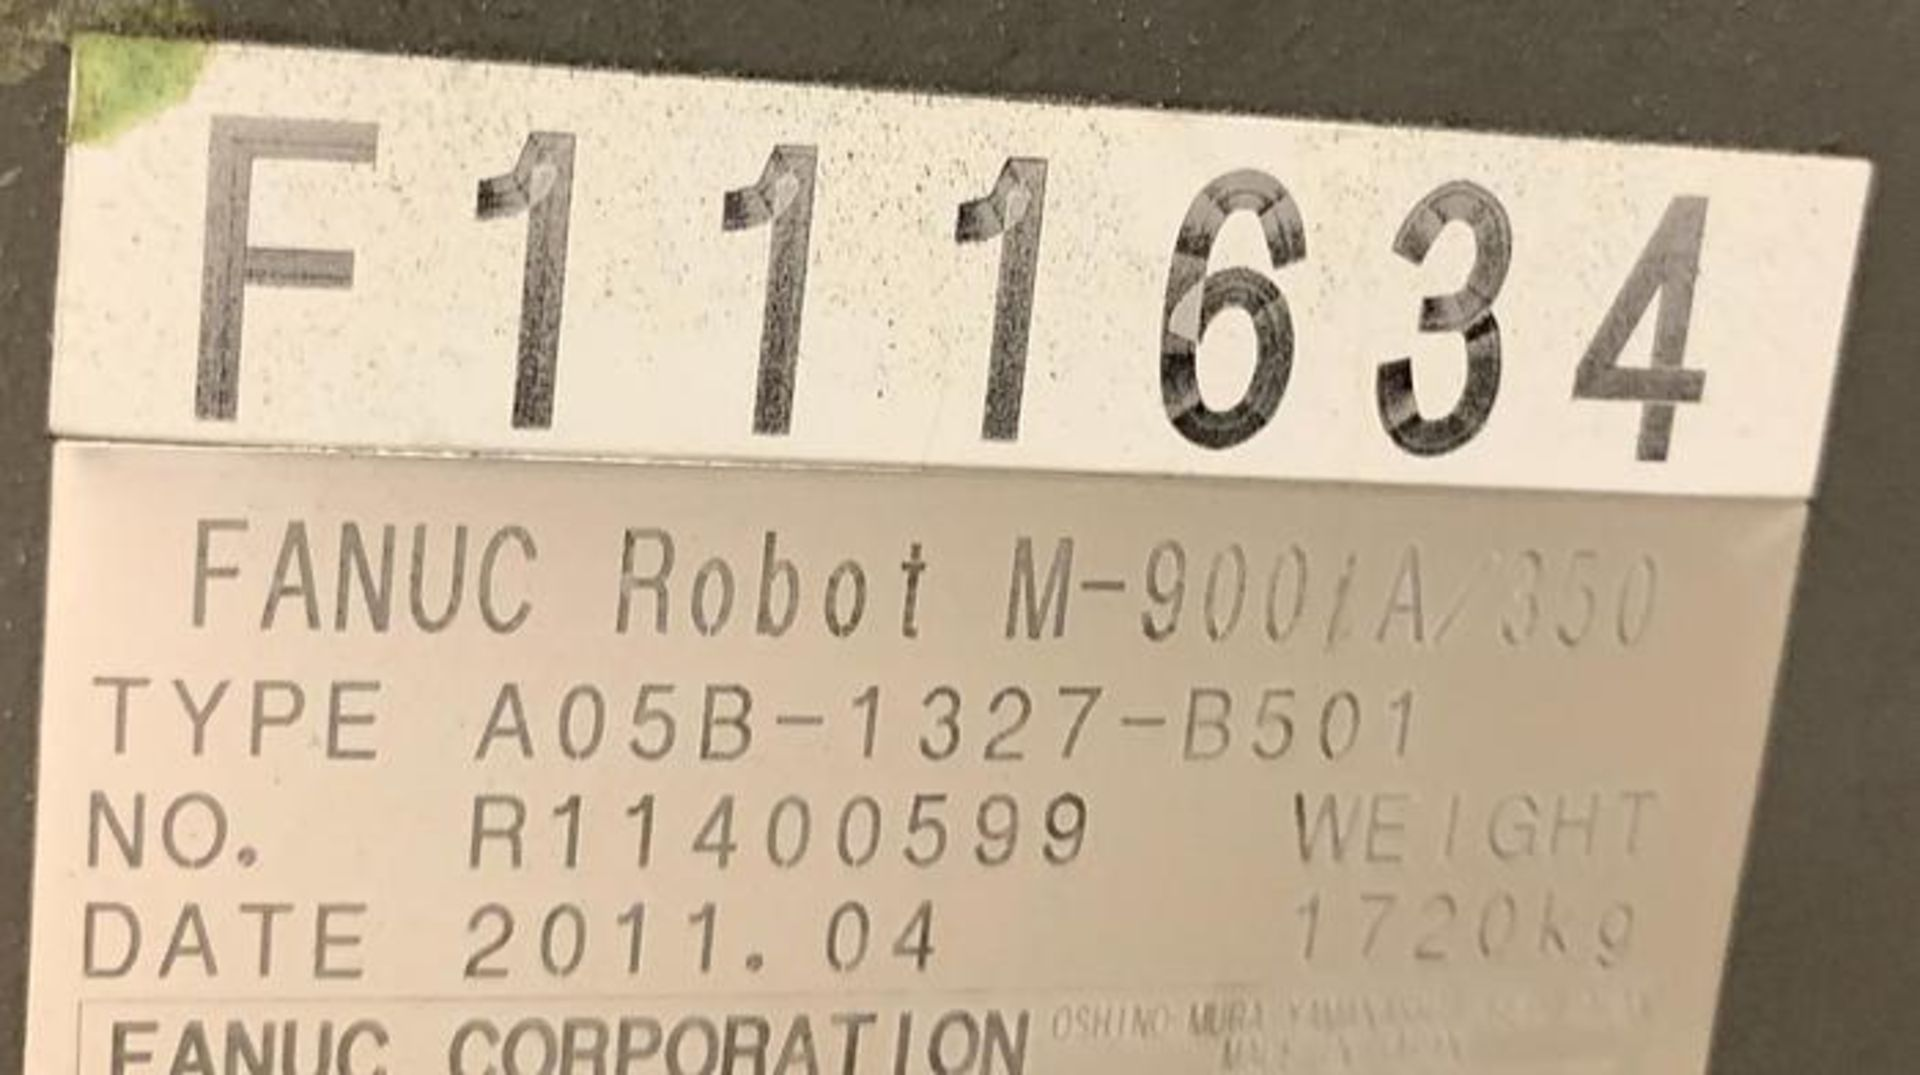 FANUC M900iA/350 6 AXIS ROBOT WITH R30iA CONTROLLER MACHINE, CABLES & TEACH SN F111634, YEAR 2011 - Image 11 of 13